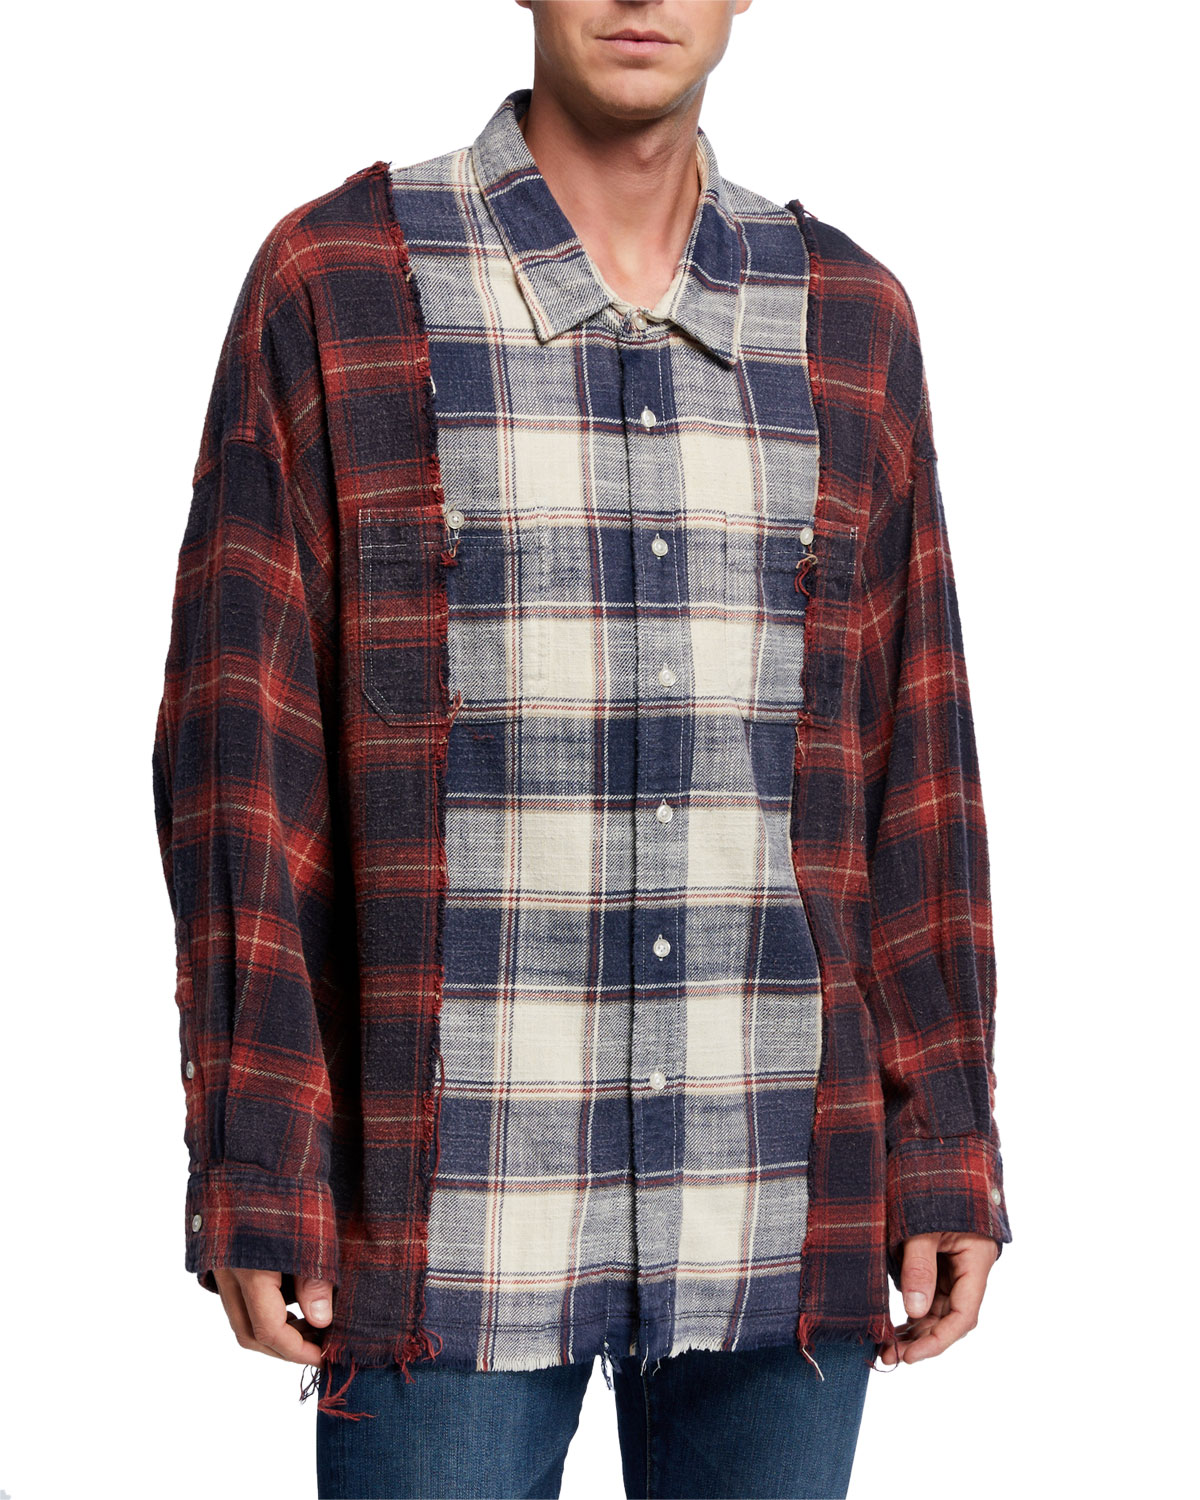 R13 T-shirts MEN'S DROP-NECK COMBINATION PLAID WORK SHIRT